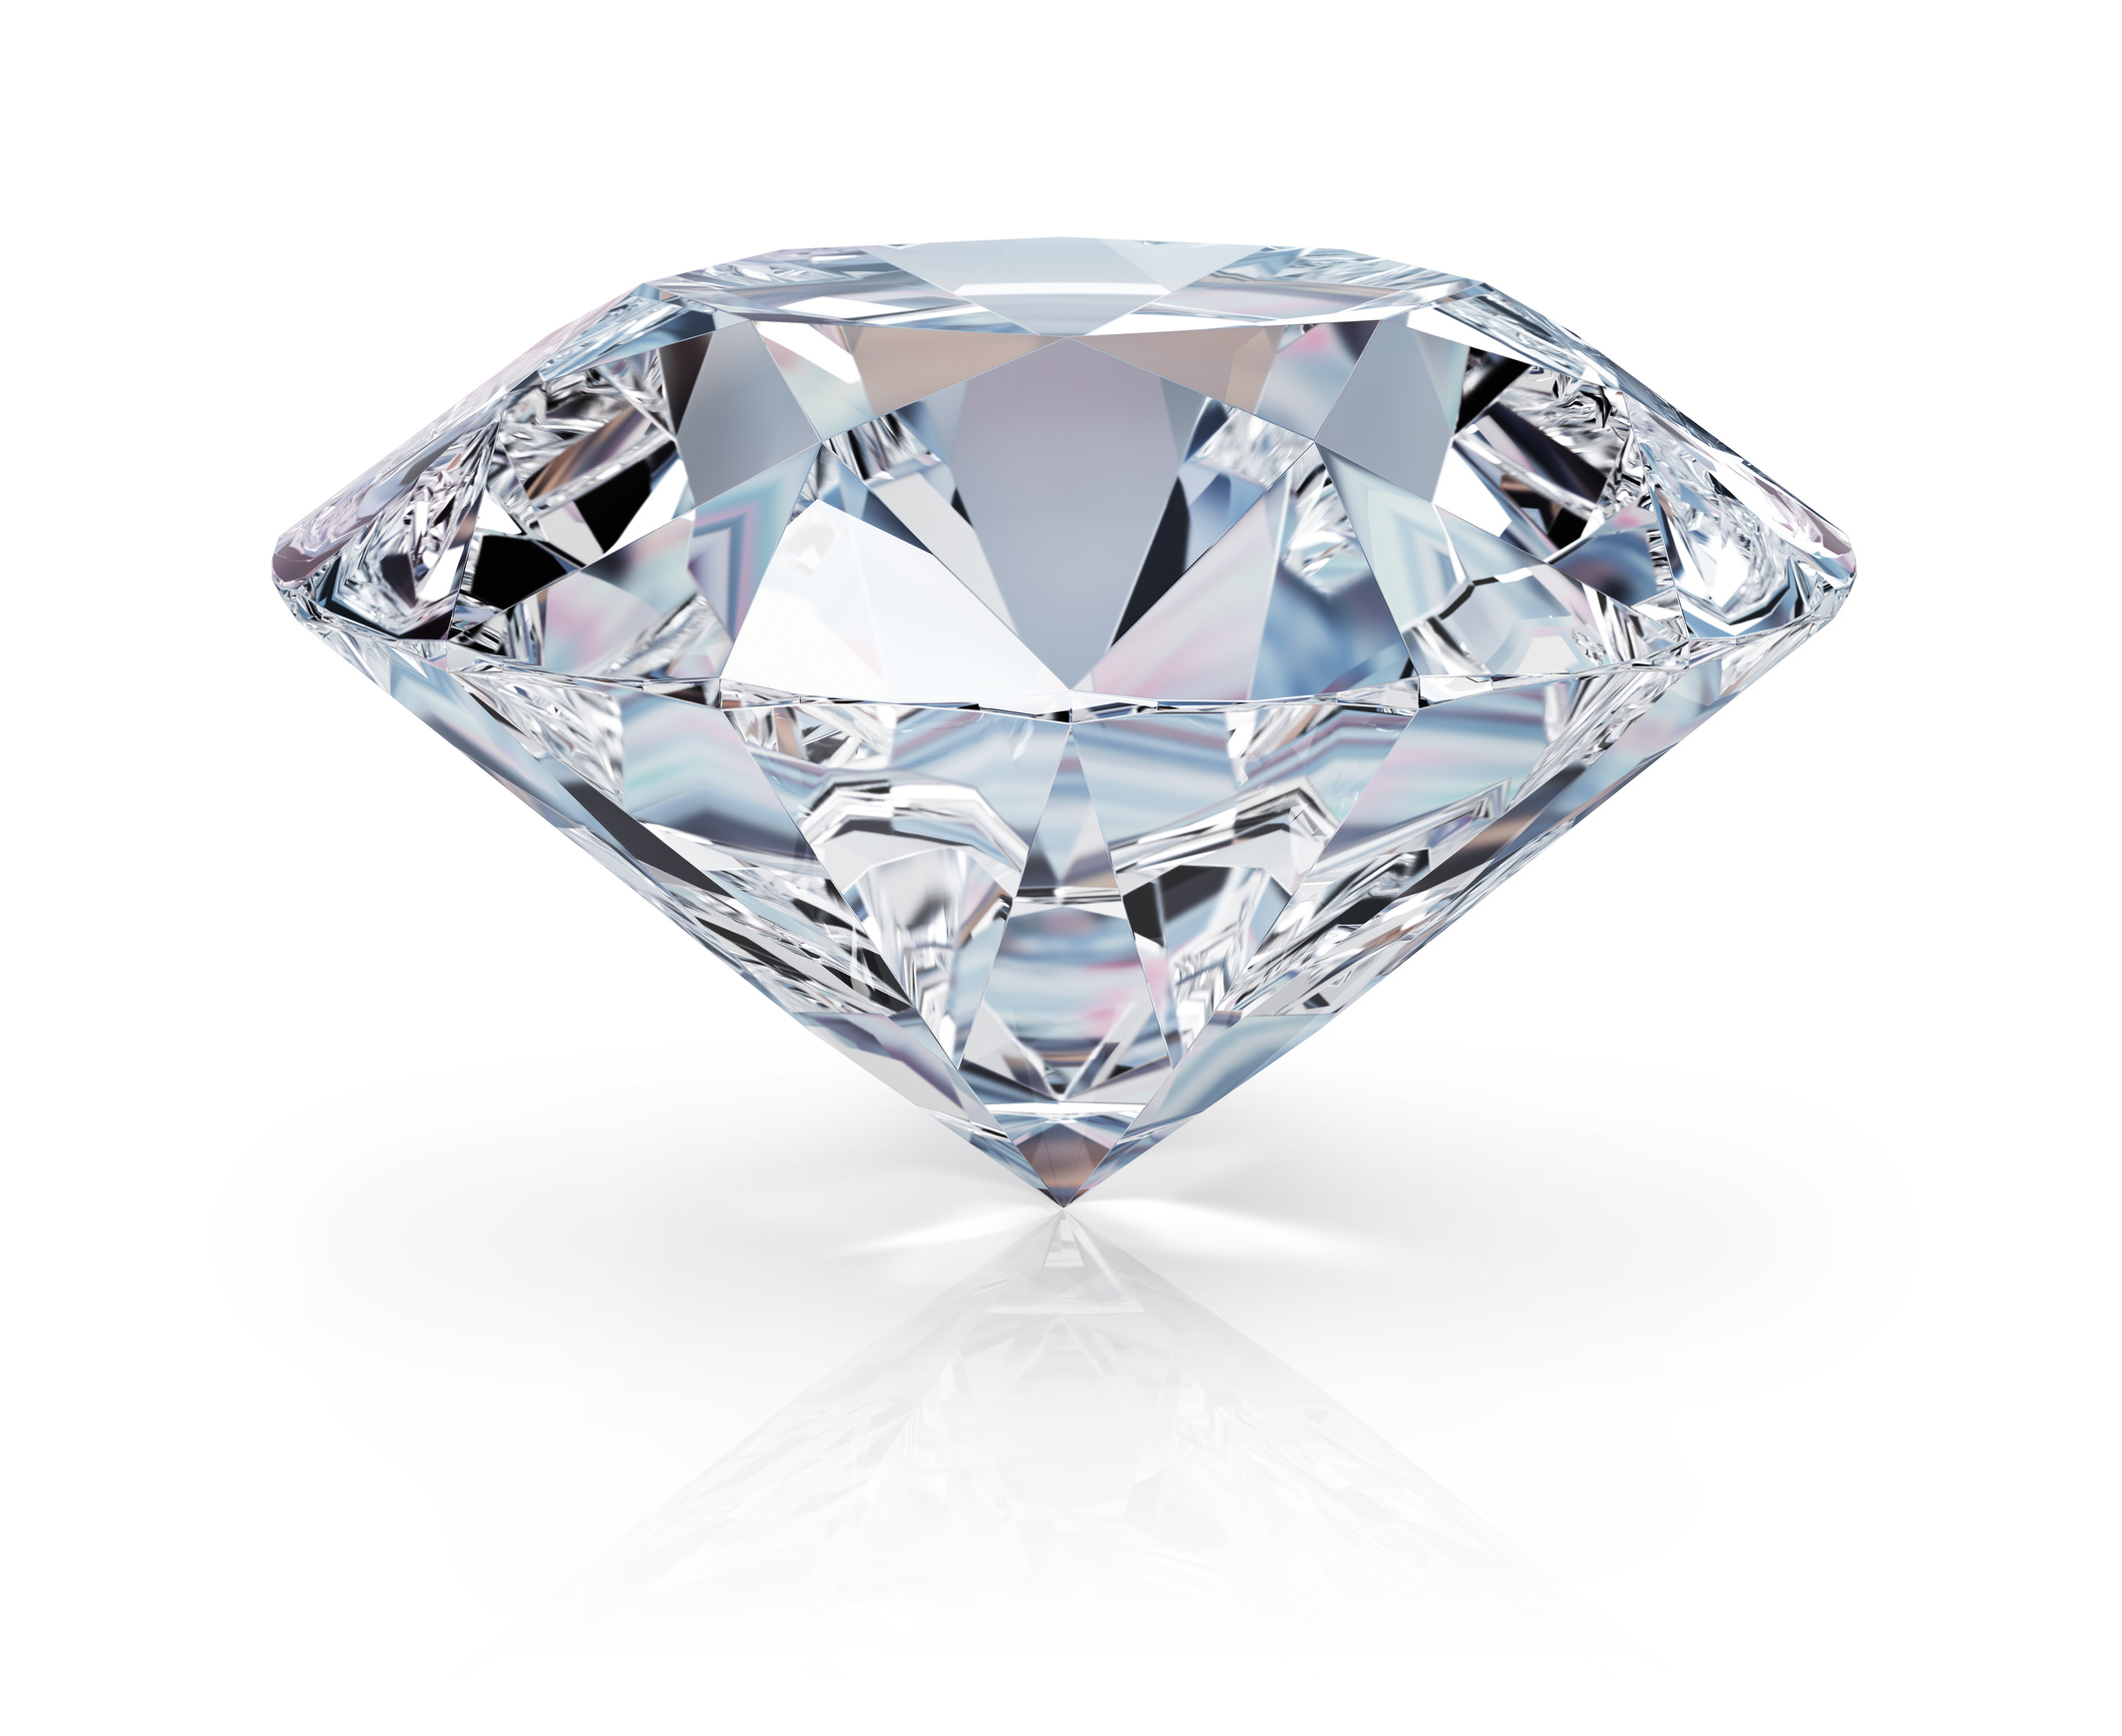 Will Synthetic Diamonds Take Over?